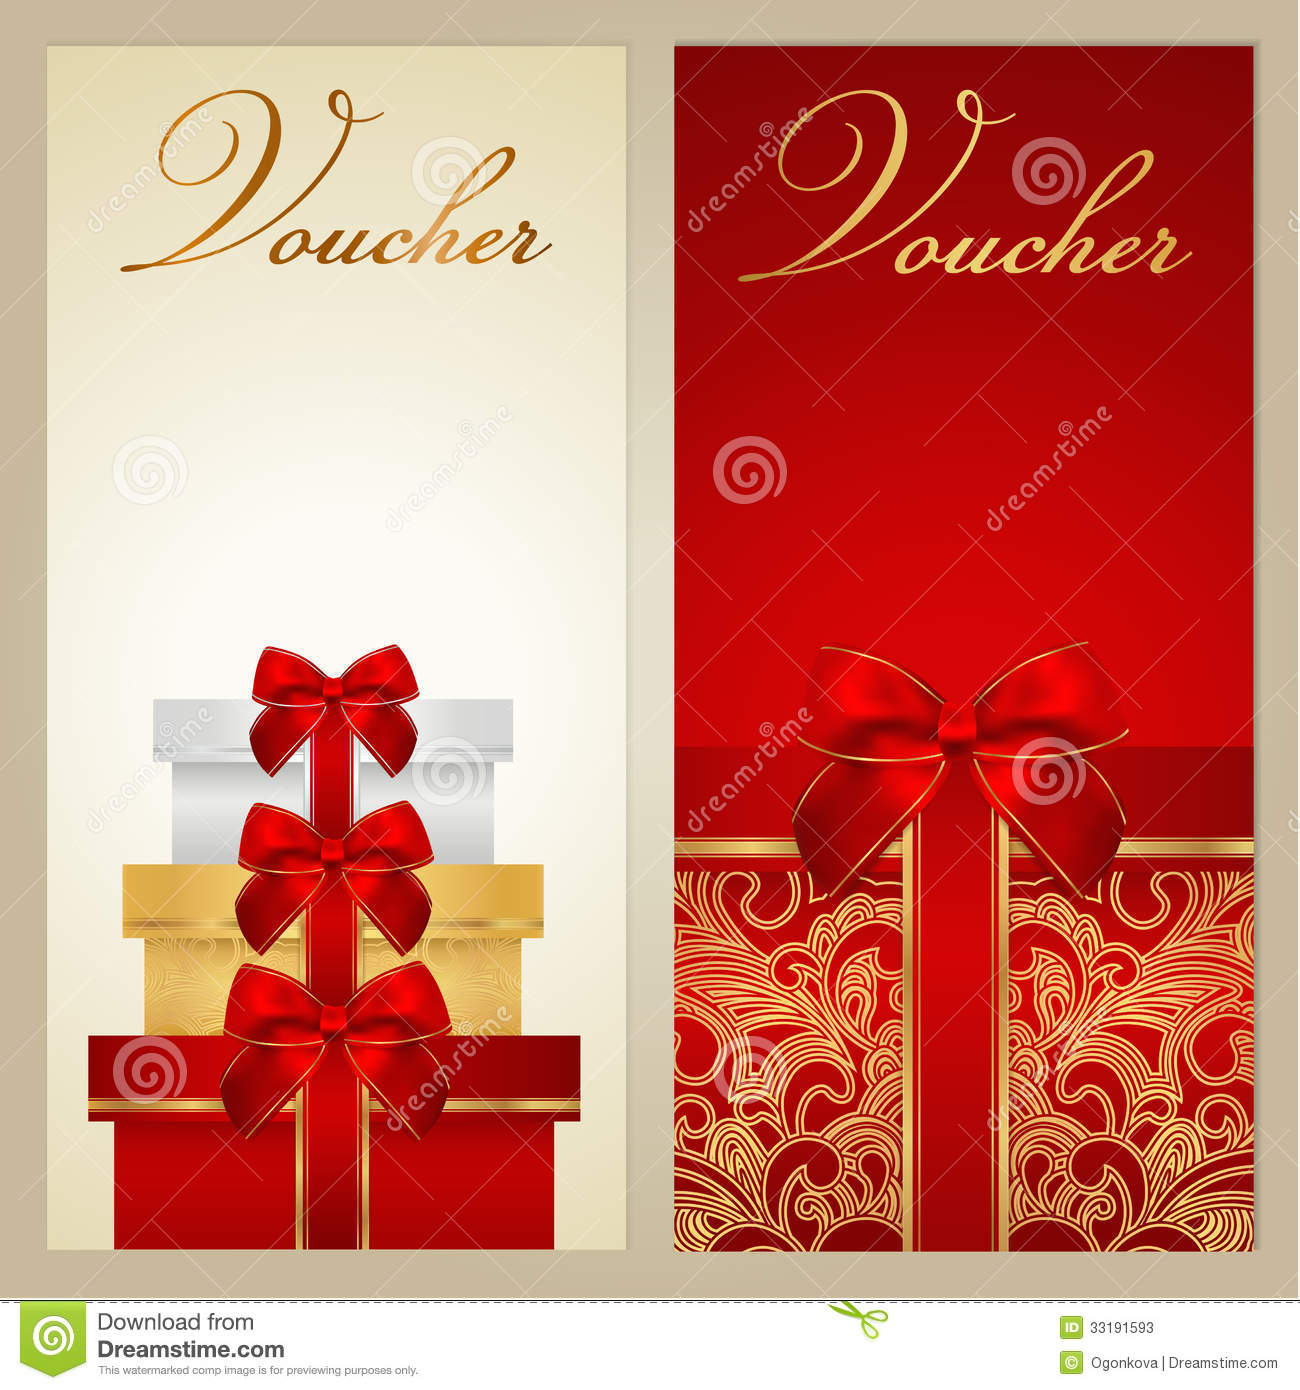 Voucher, Gift Certificate, Coupon. Boxes, Bow  Free Holiday Gift Certificate Templates